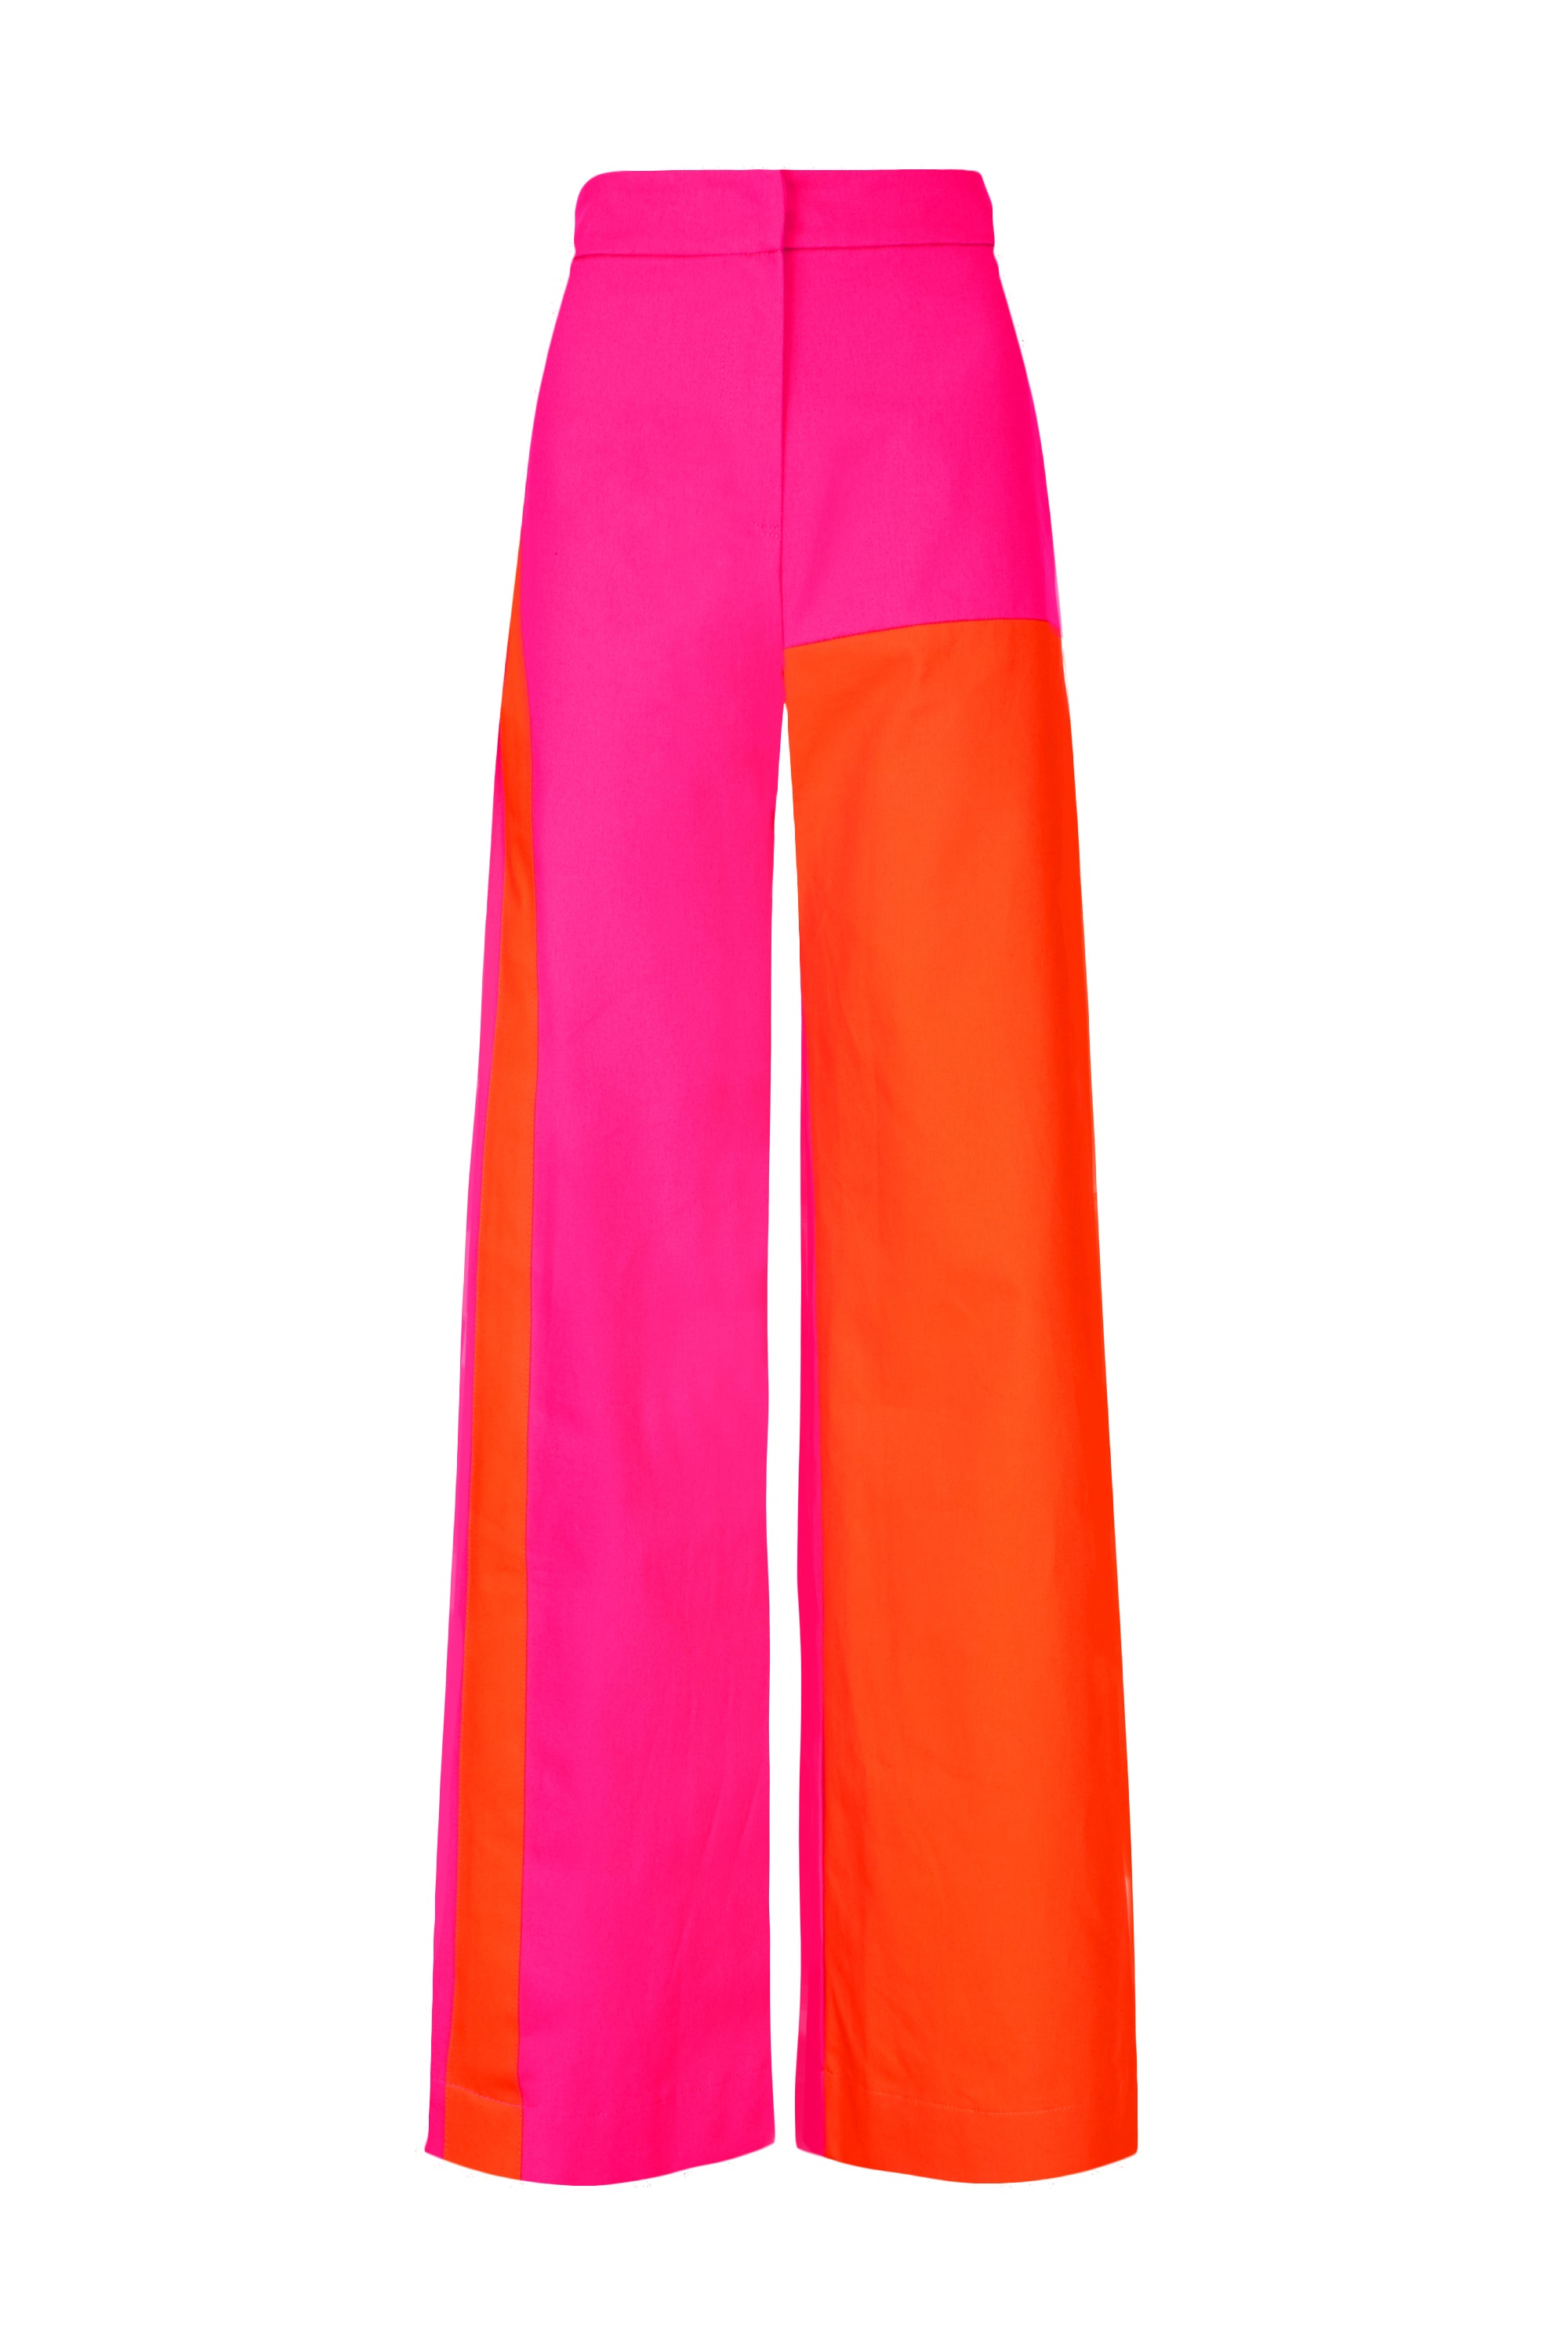 The Colour Block Trouser - Pink & Orange Cotton